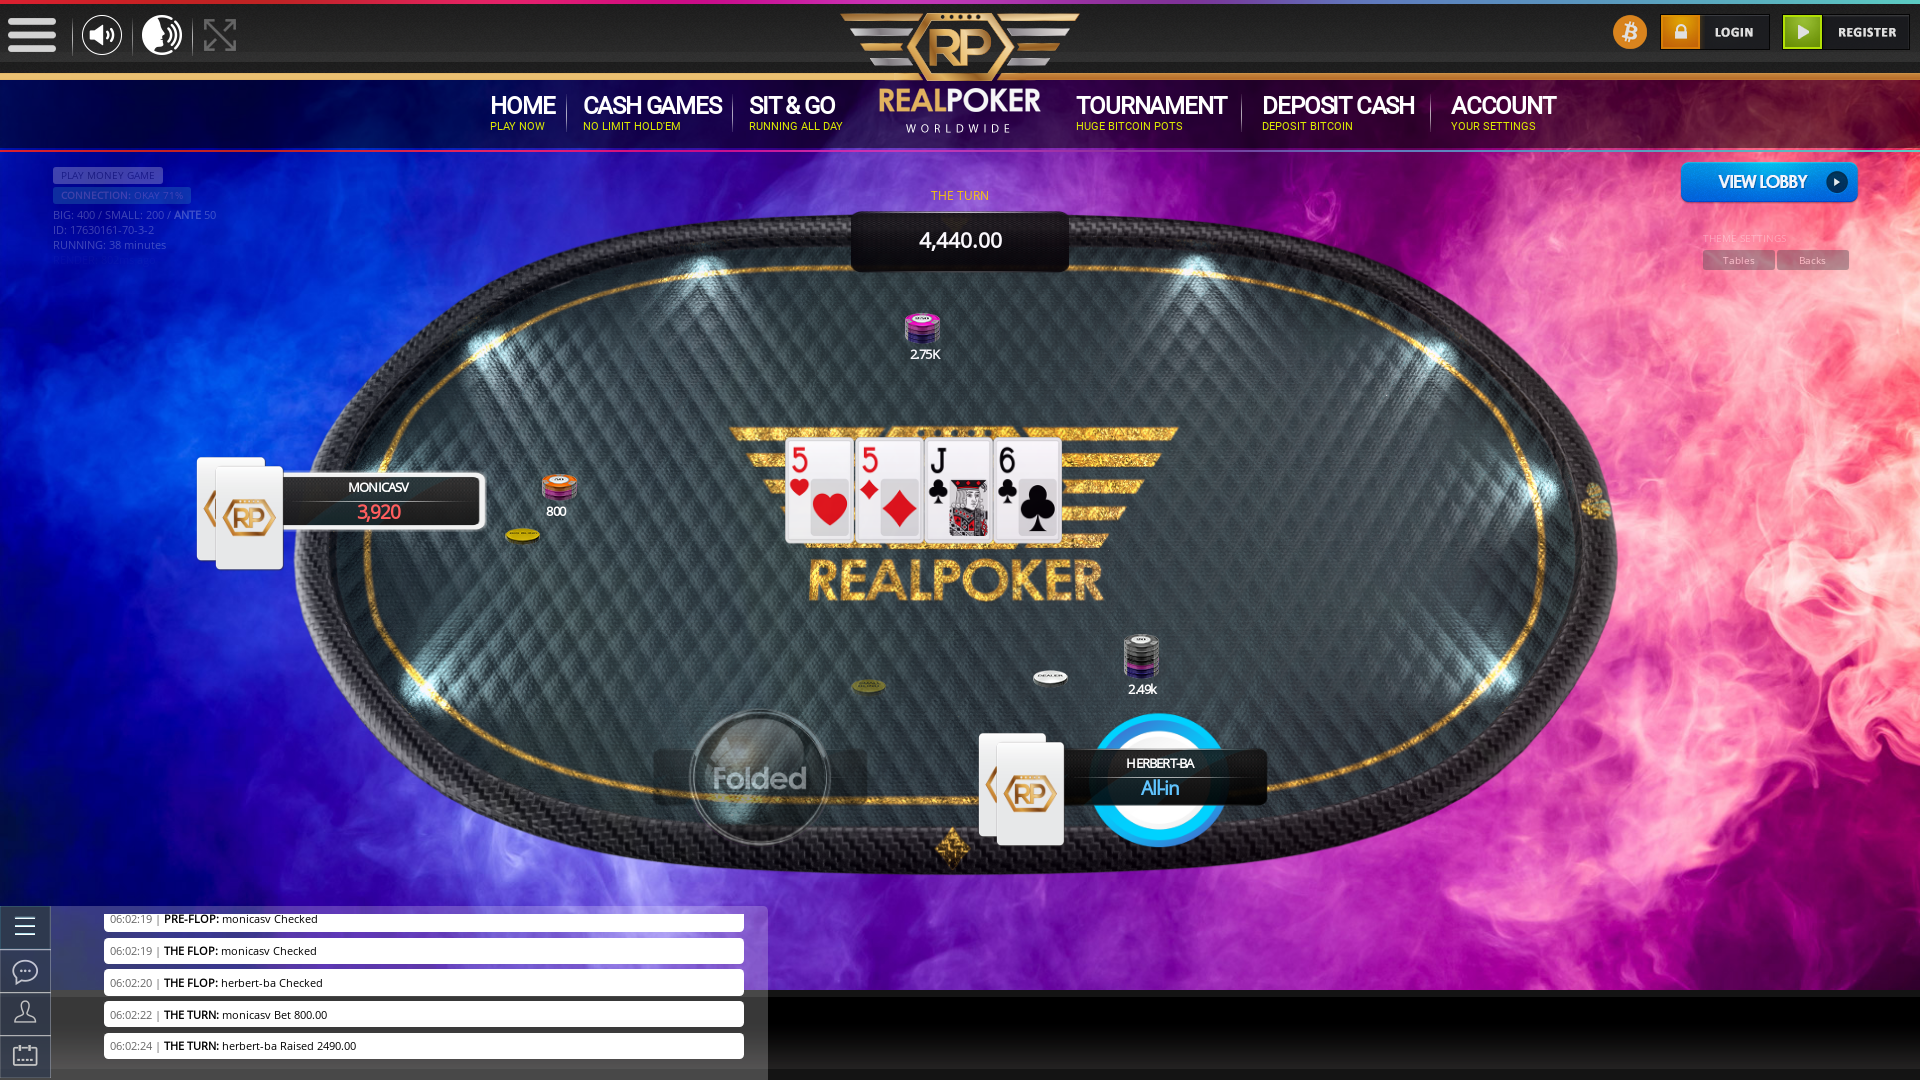 10 player texas holdem table at real poker with the table id 17630161